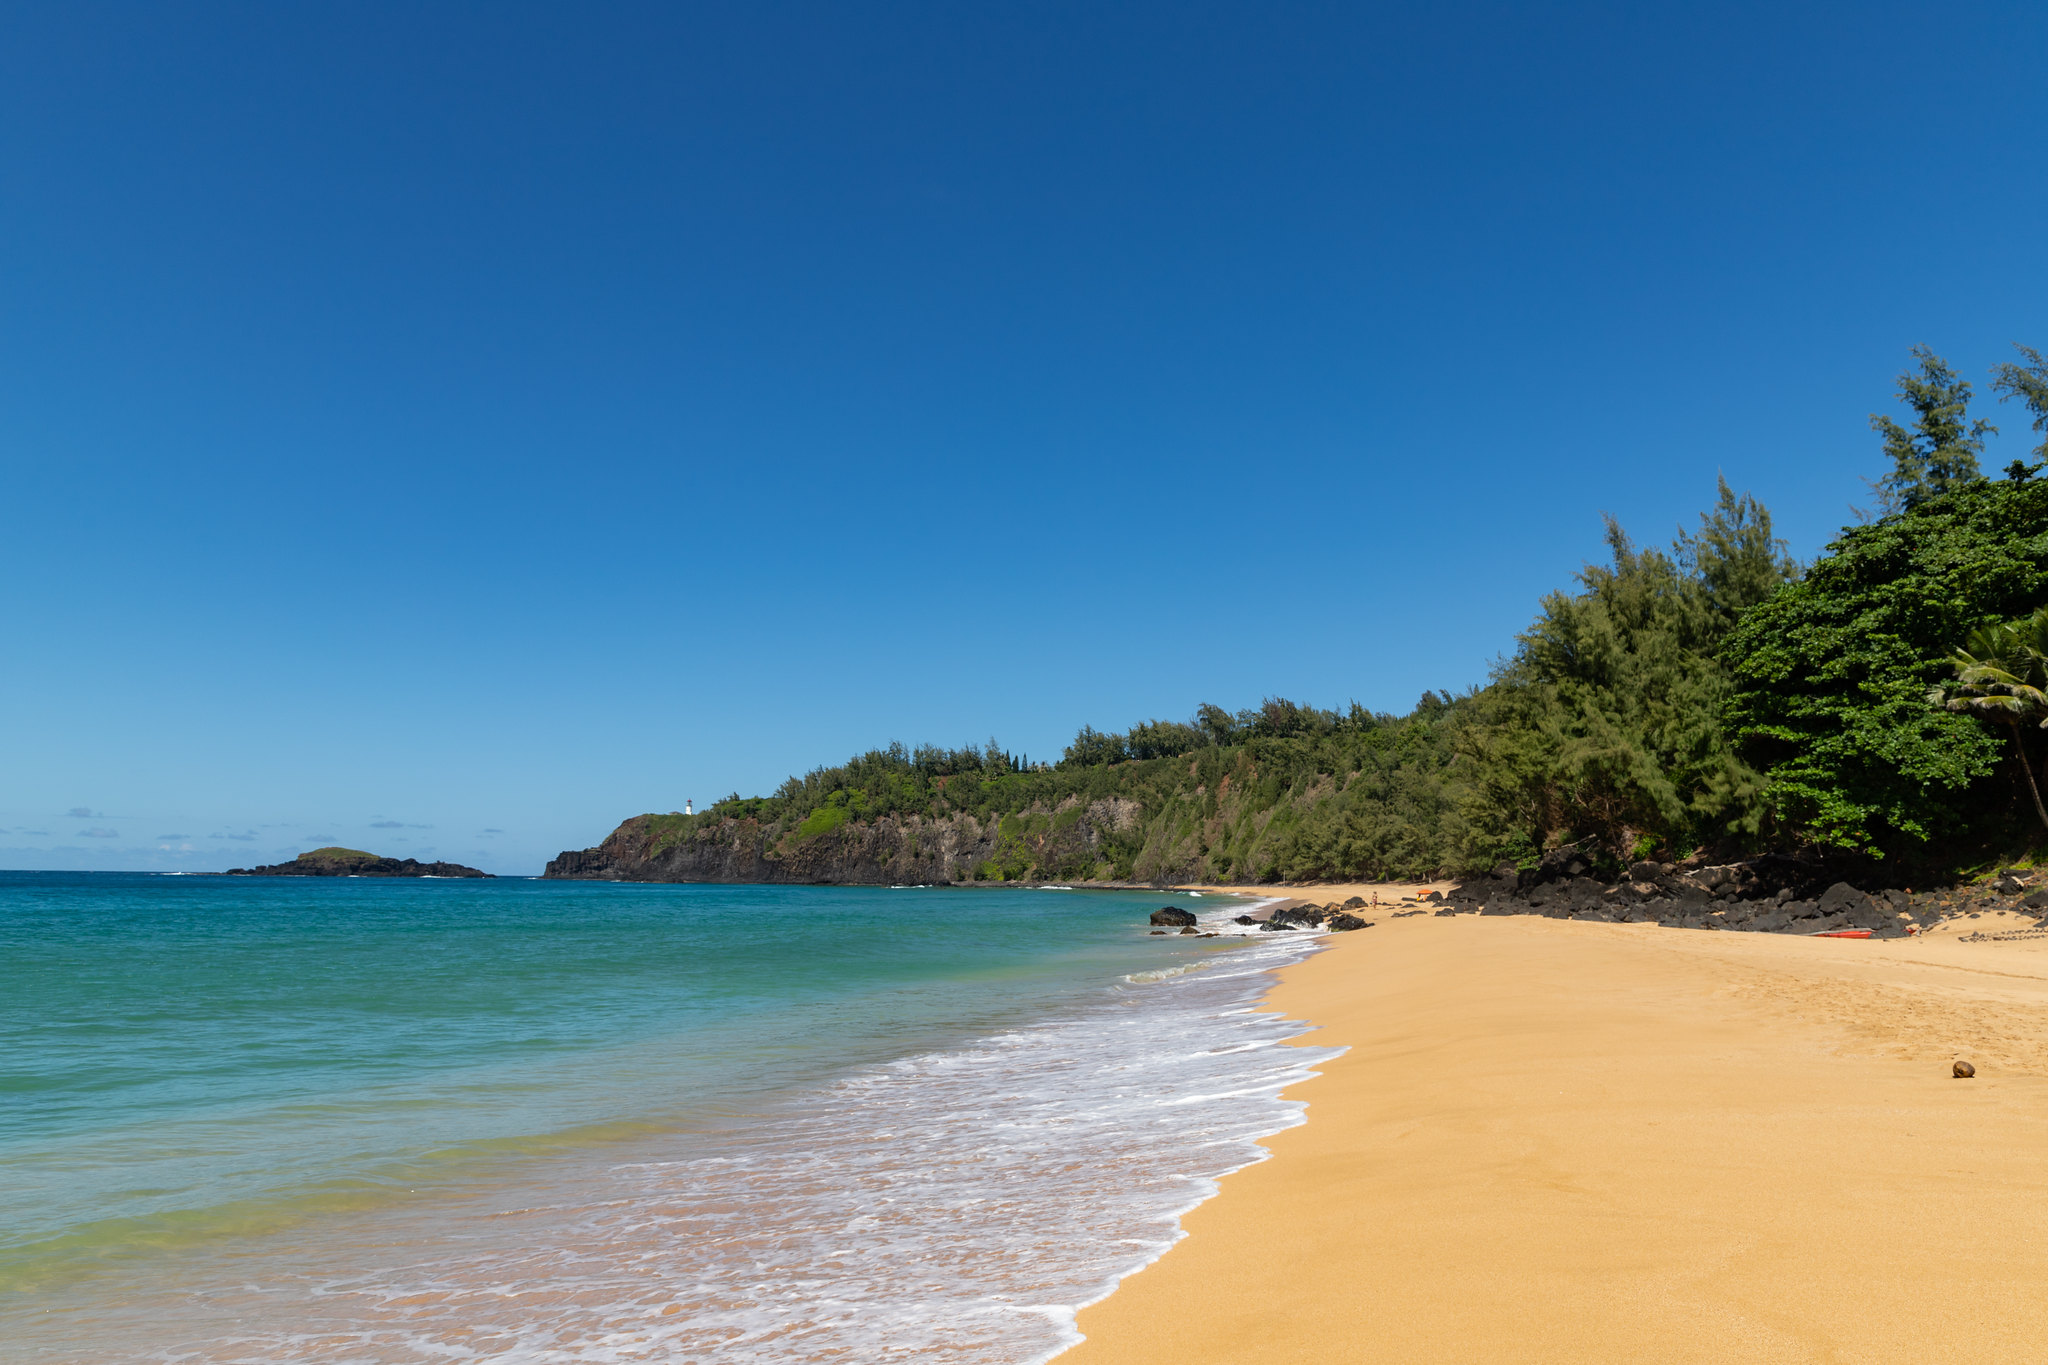 Secluded secret topless beach in Kauai, Hawaii